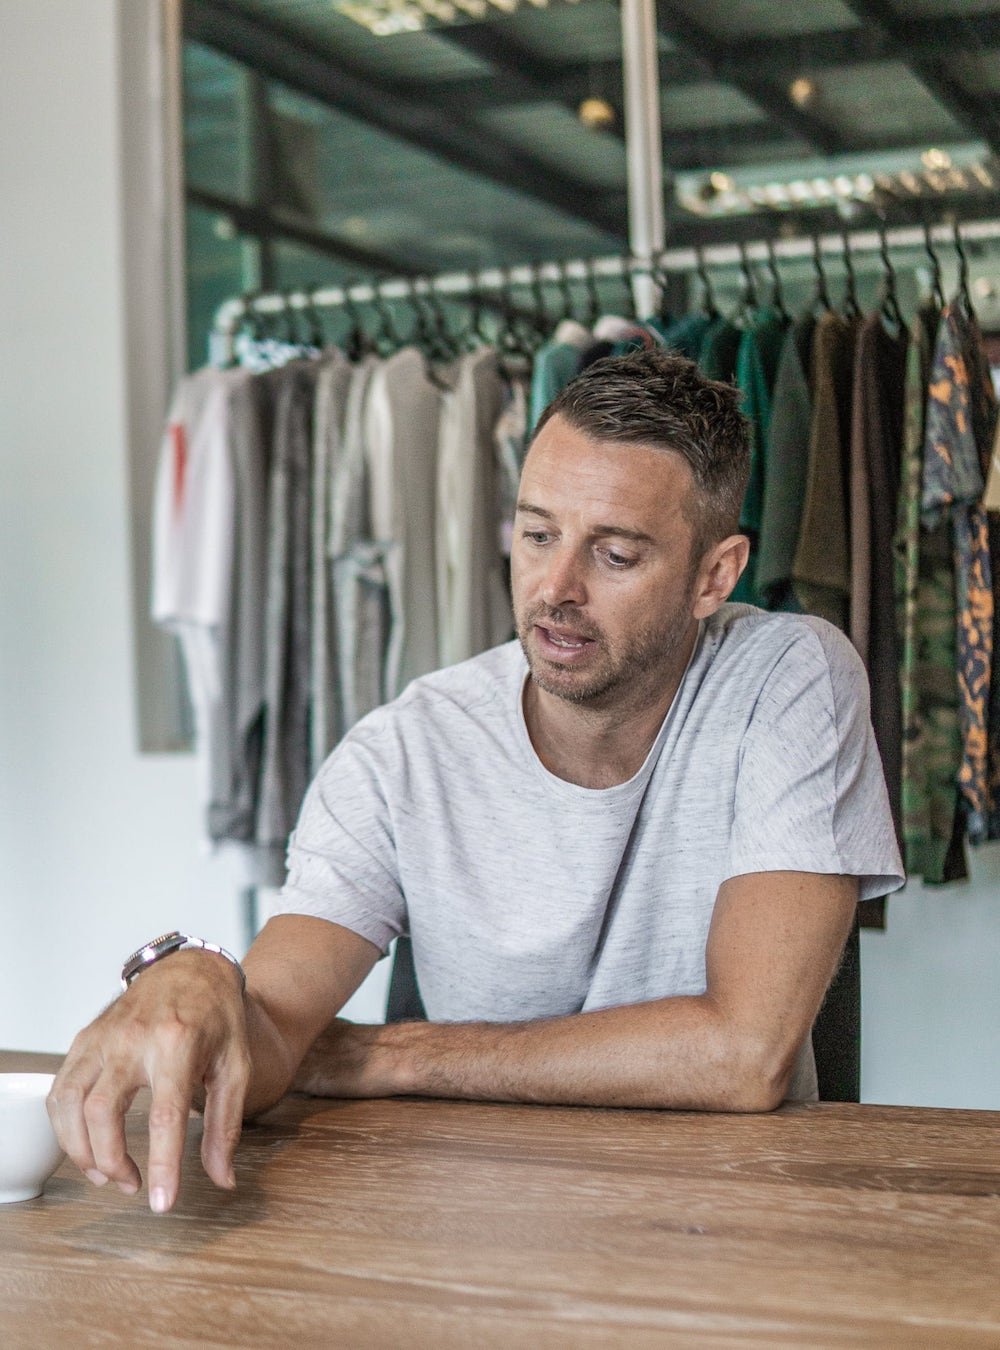 How I Manage: Un-Available's Paul Norriss On Producing Garments For Streetwear Brands-5